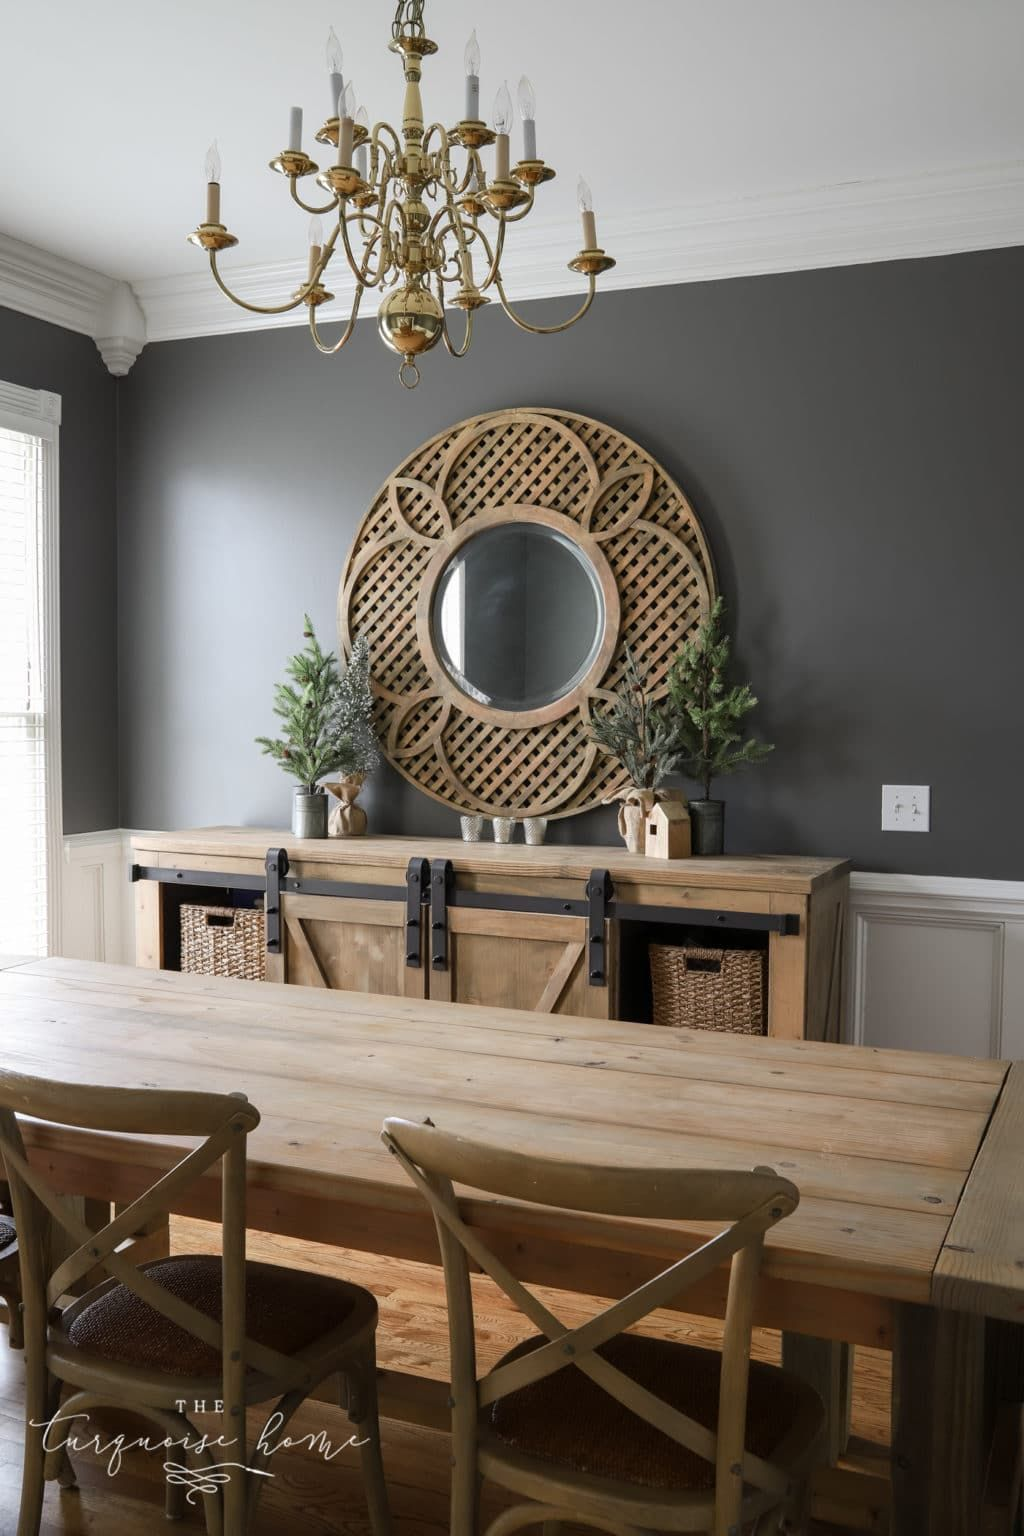 Charcoal Painted Walls In My Dining Room Dining Room Inspiration Dining Room Paint Dining Room Remodel